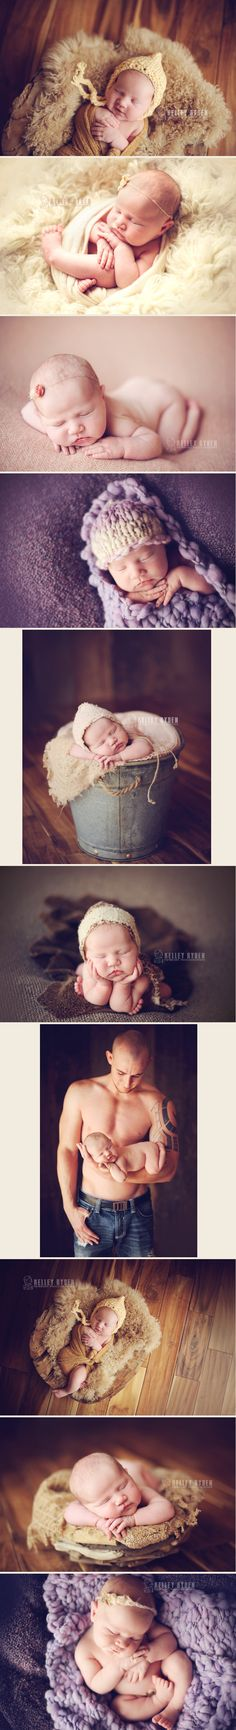 newborn girl - Kelley Ryden